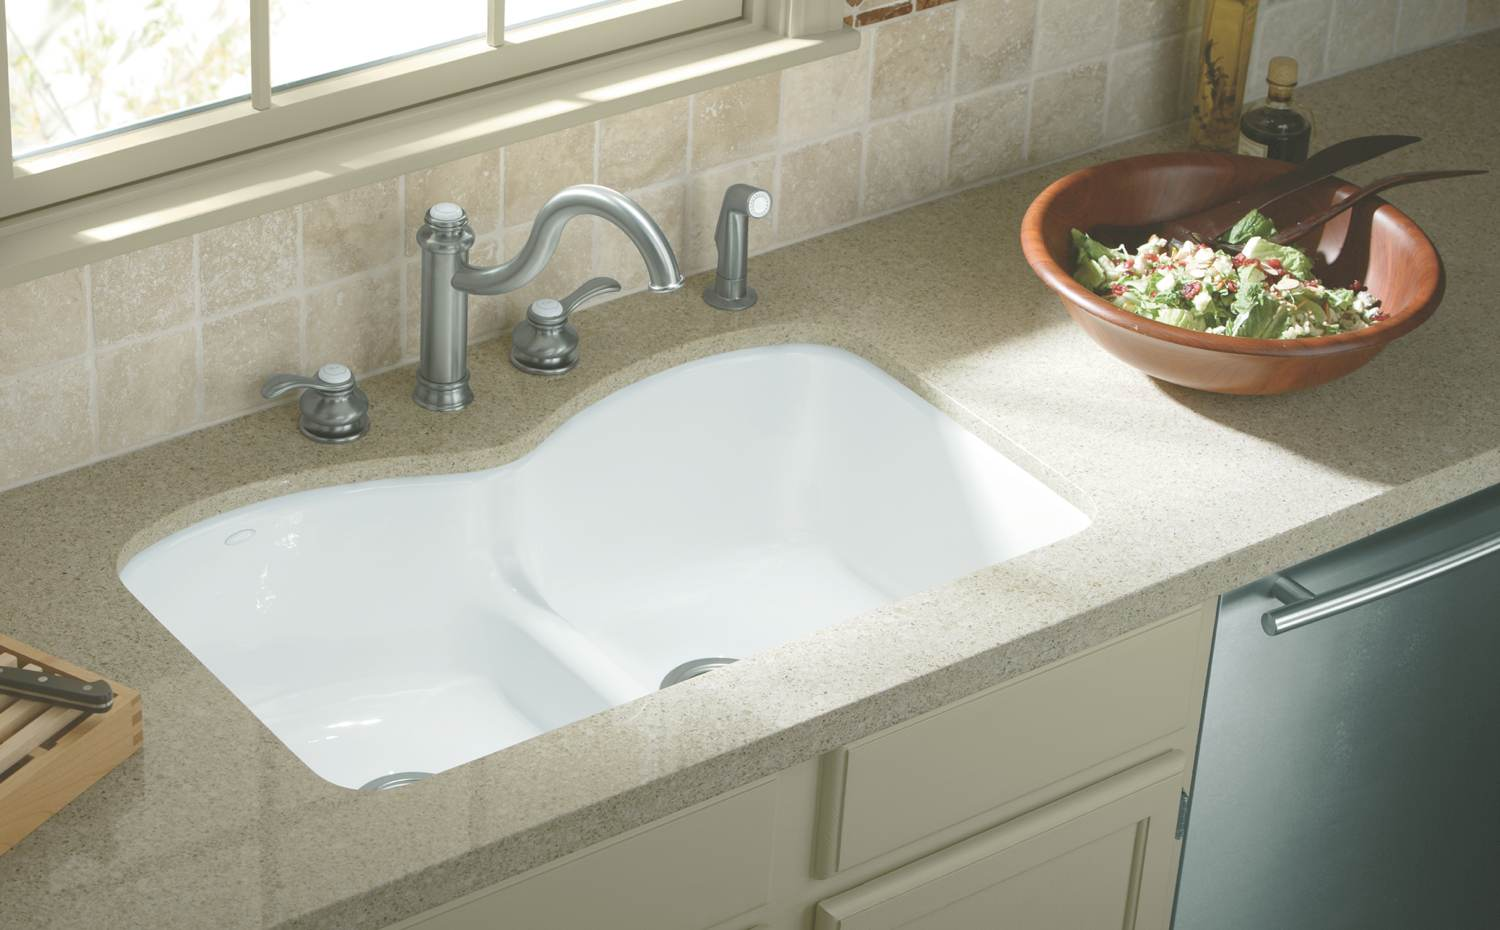 Double Sinks For Kitchen : ... Undercounter Kitchen Sink, White - Double Bowl Sinks - Amazon.com